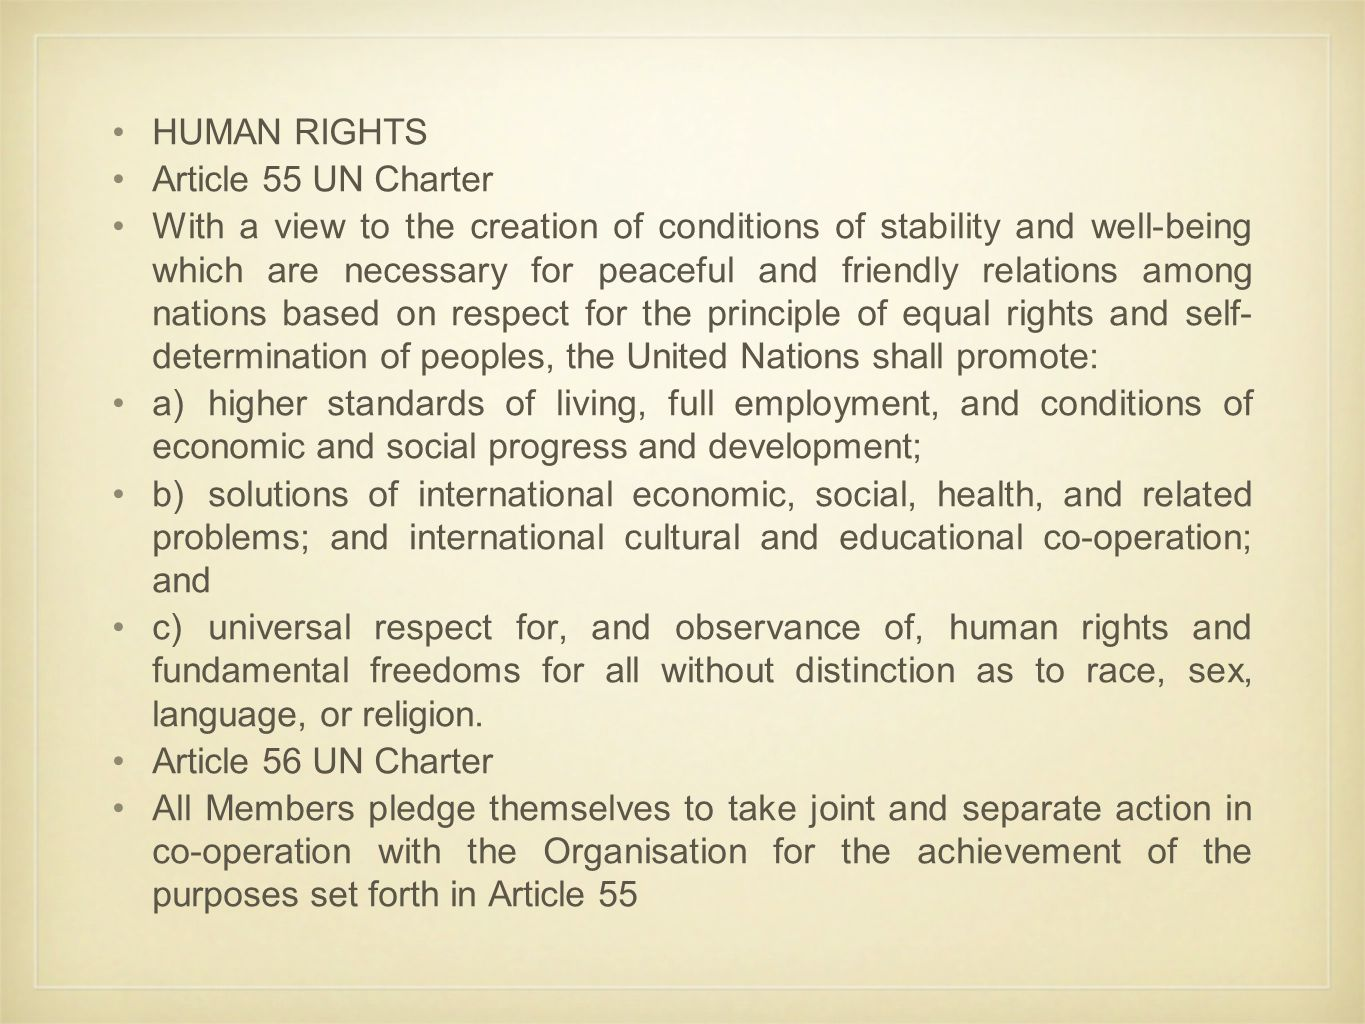 HUMAN RIGHTS Article 55 UN Charter With a view to the creation of conditions of stability and well-being which are necessary for peaceful and friendly relations among nations based on respect for the principle of equal rights and self- determination of peoples, the United Nations shall promote: a)higher standards of living, full employment, and conditions of economic and social progress and development; b)solutions of international economic, social, health, and related problems; and international cultural and educational co-operation; and c)universal respect for, and observance of, human rights and fundamental freedoms for all without distinction as to race, sex, language, or religion.